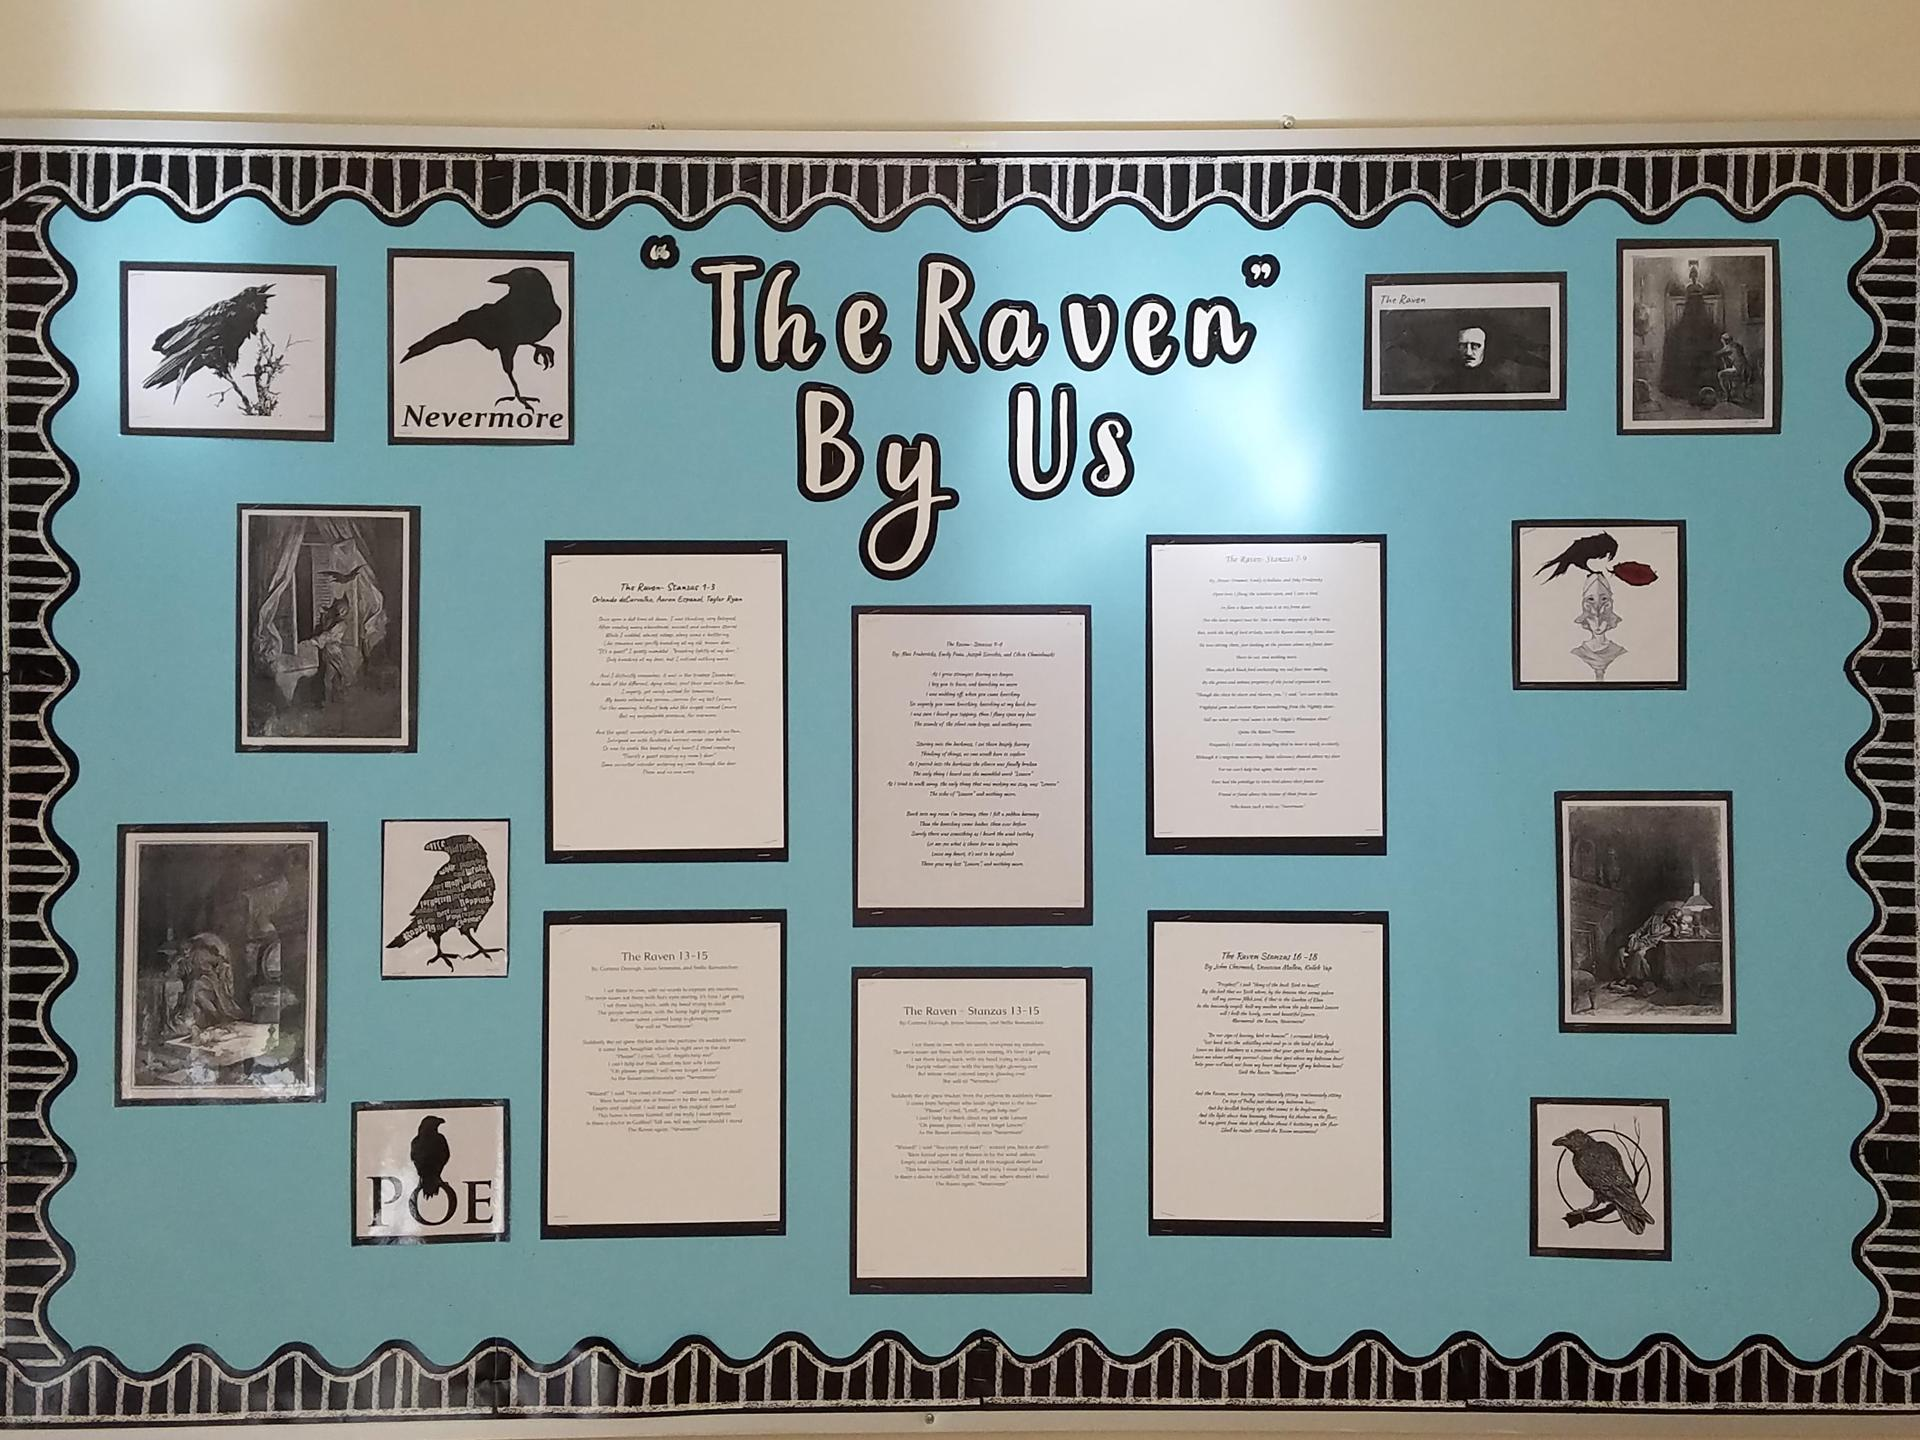 The Raven rewritten by the students